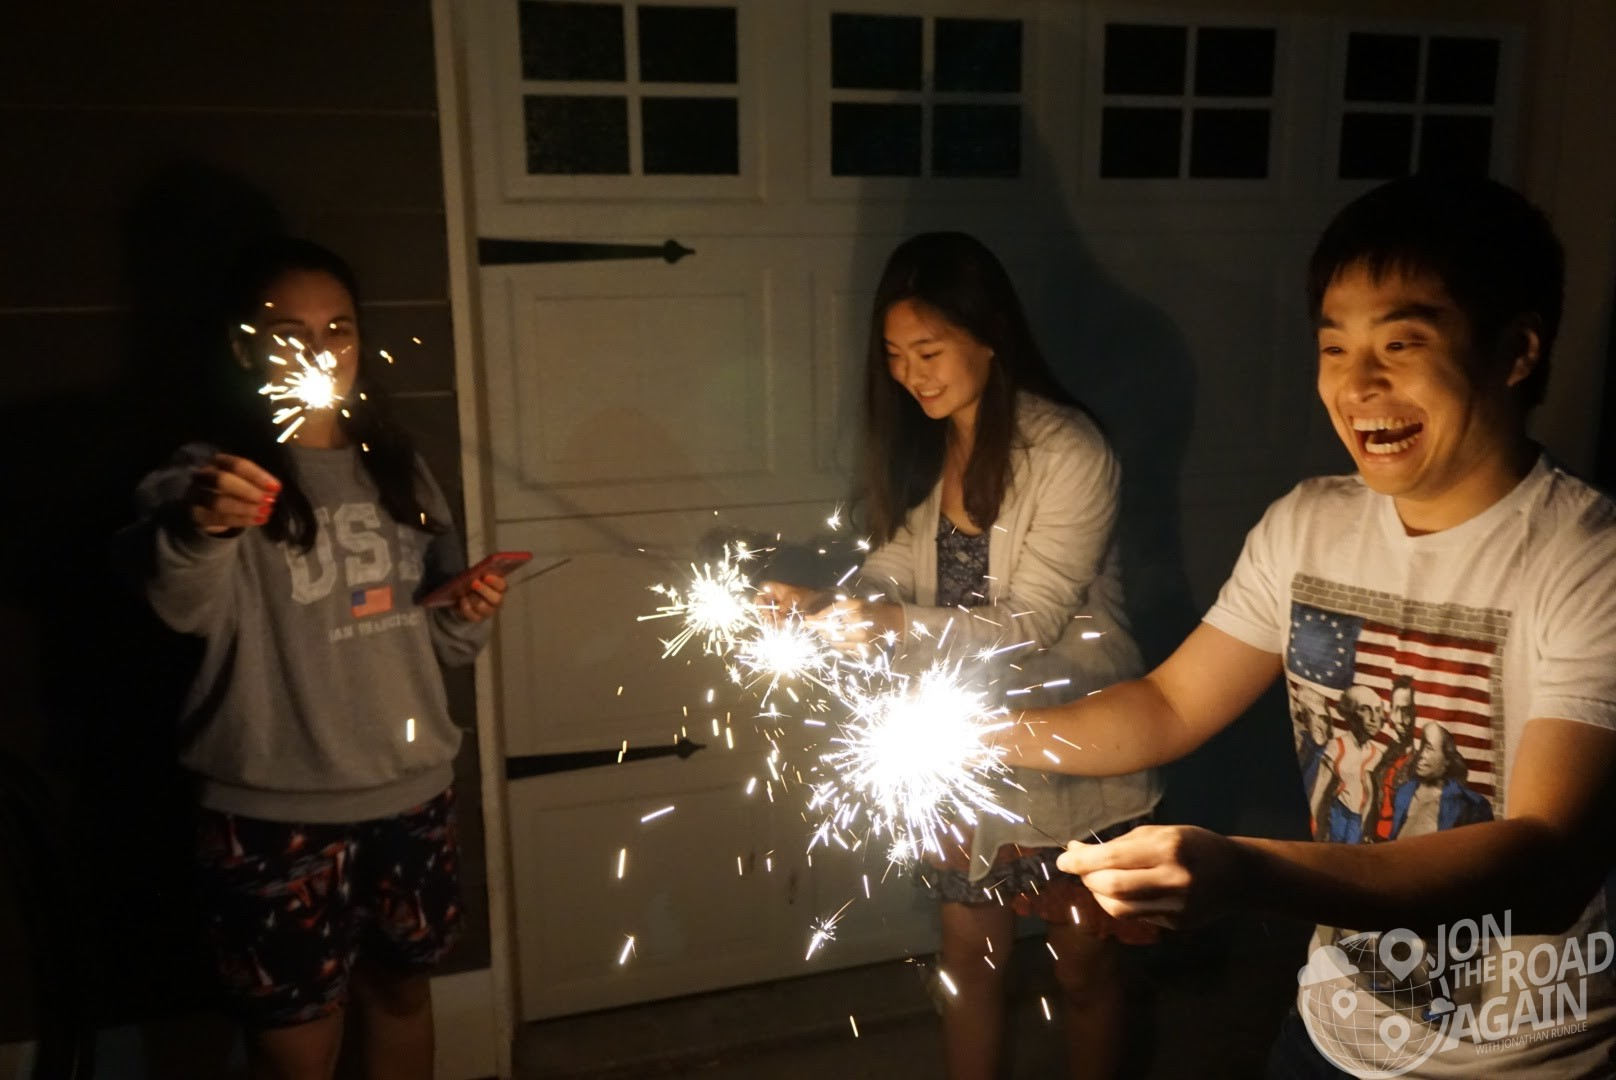 Election Day - sparklers